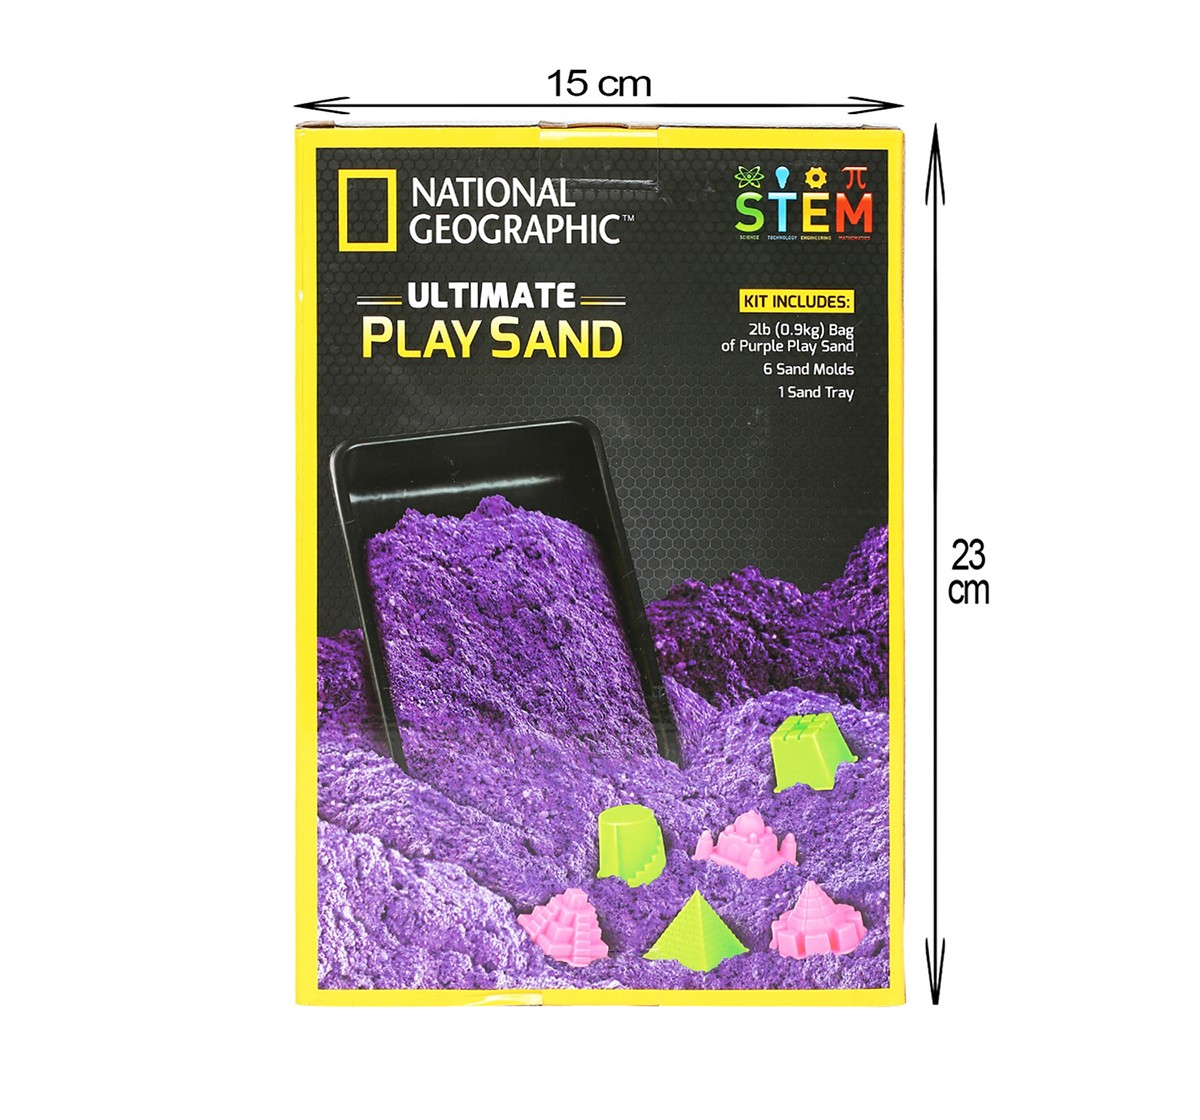 National Geographic Ultimate Play Sand for Kids age 3Y+ (Purple)